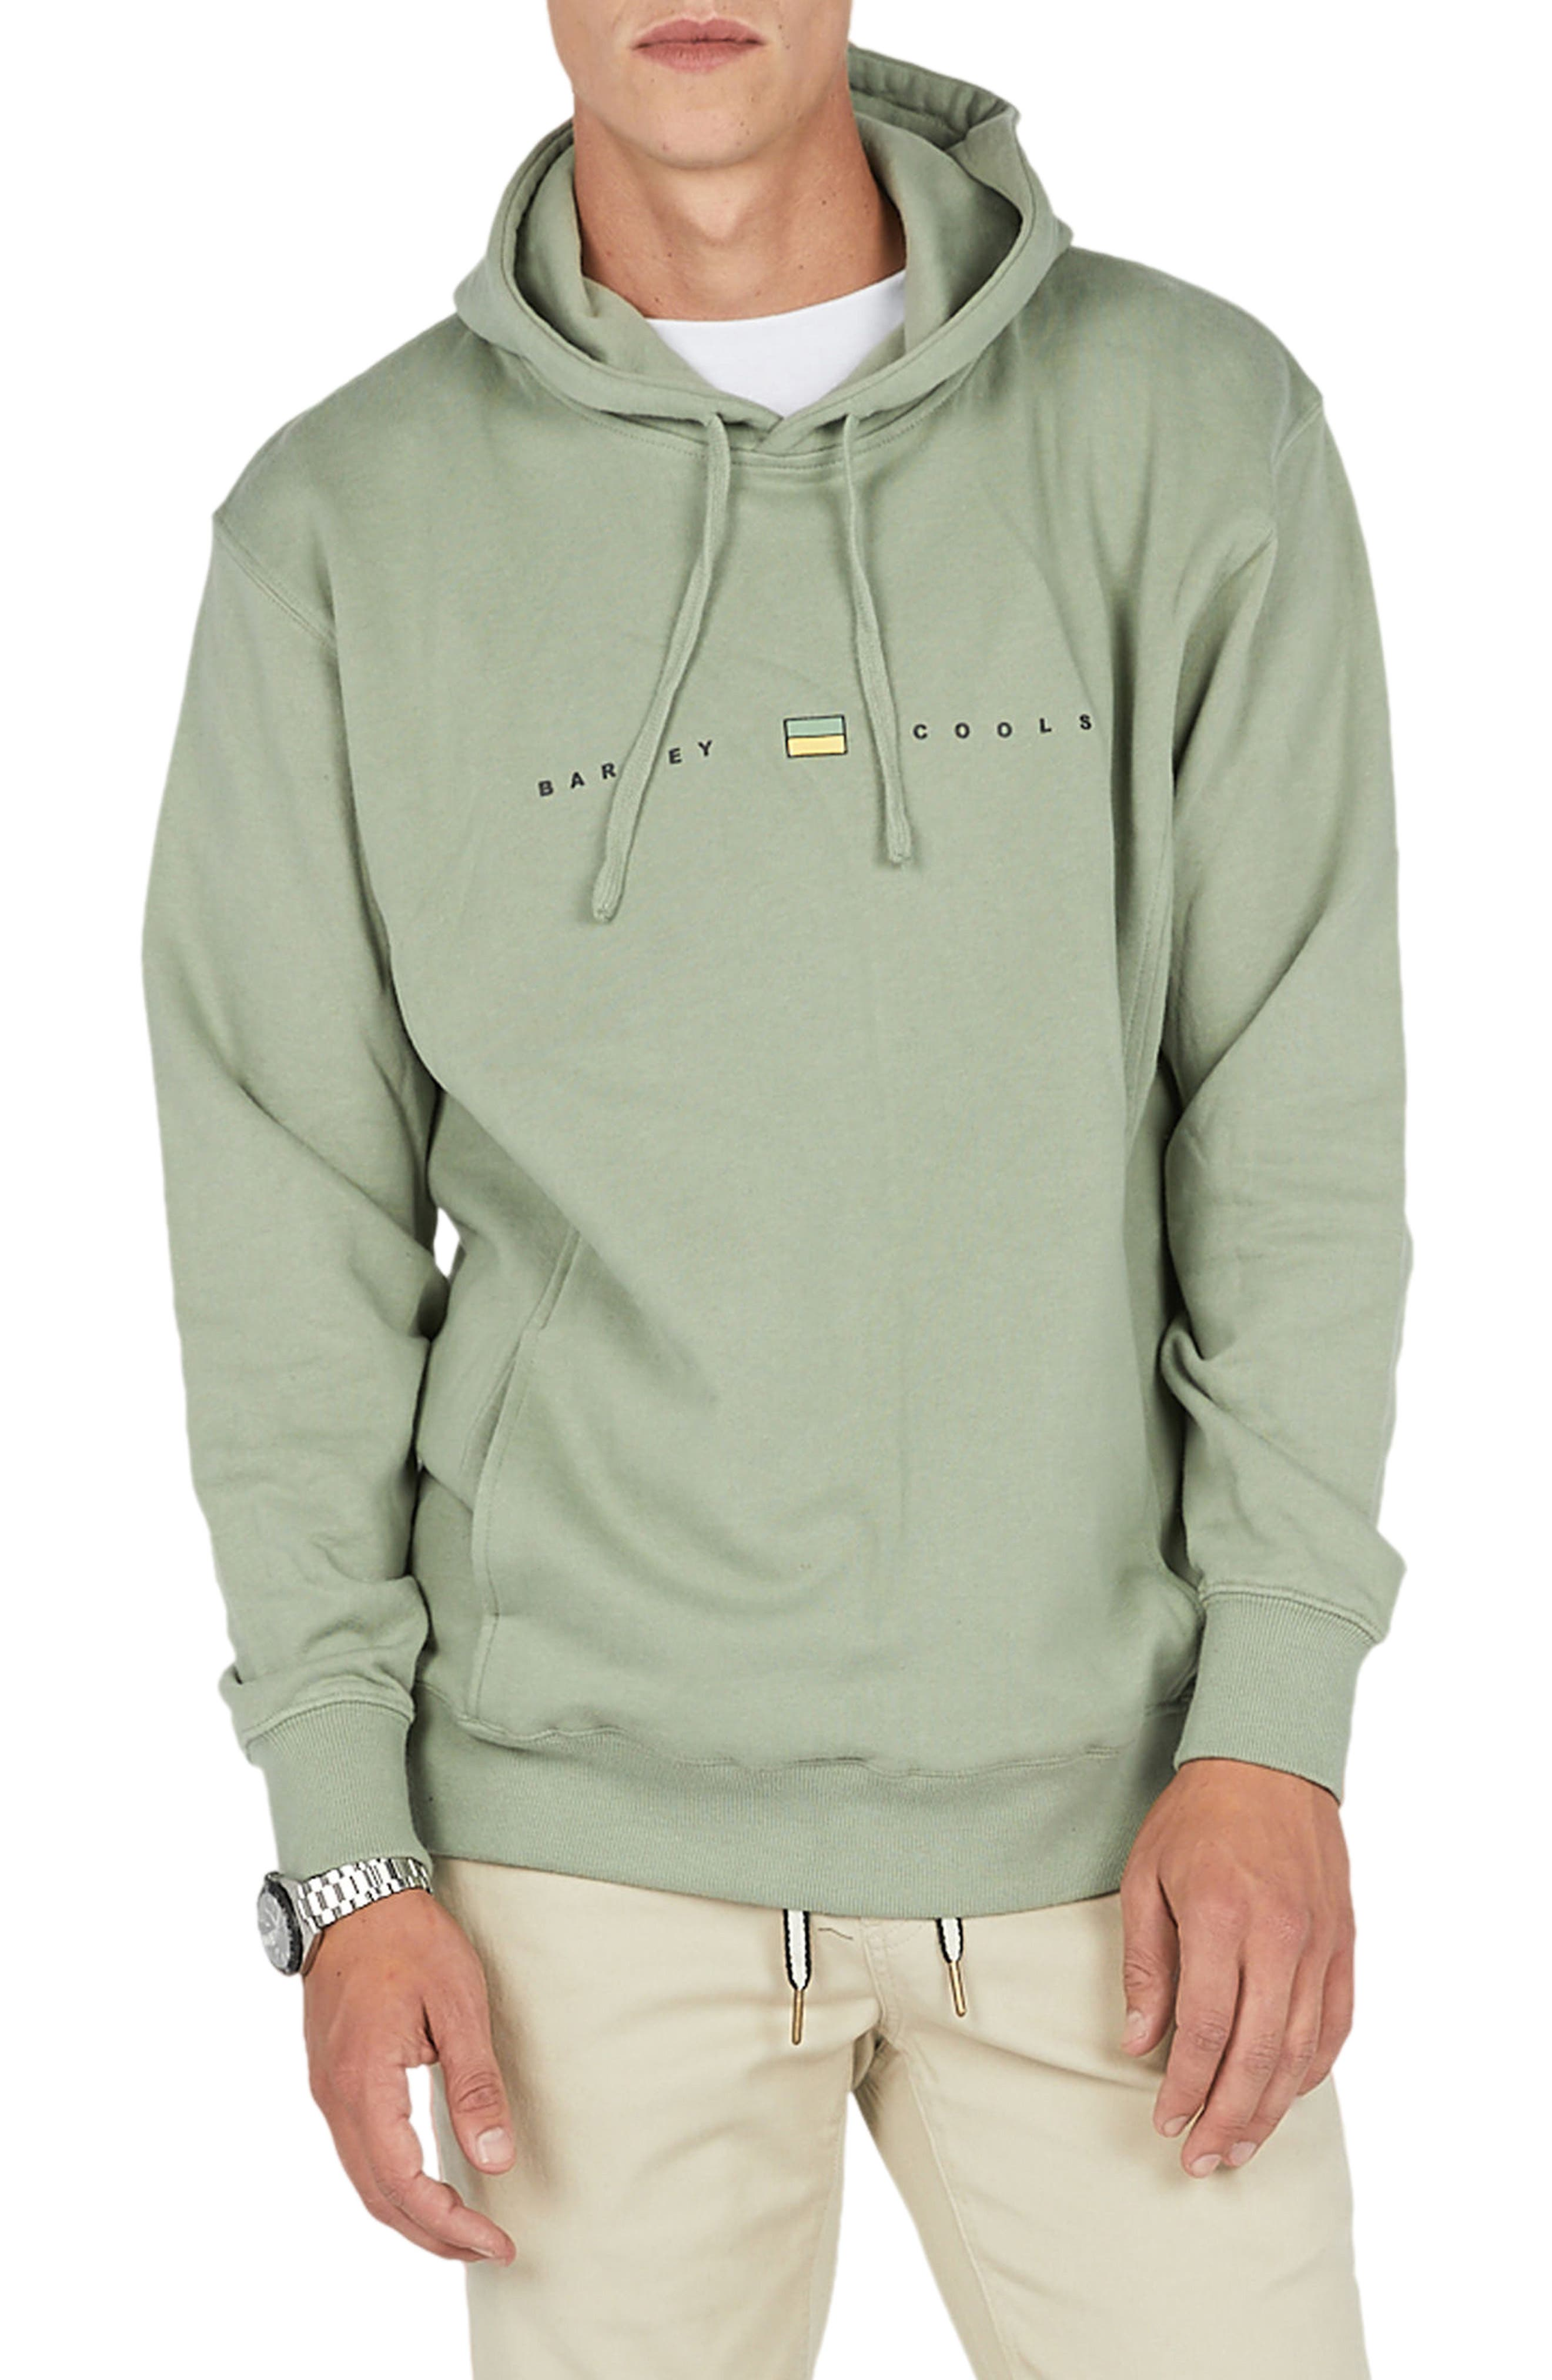 B. Cause Hoodie,                             Main thumbnail 1, color,